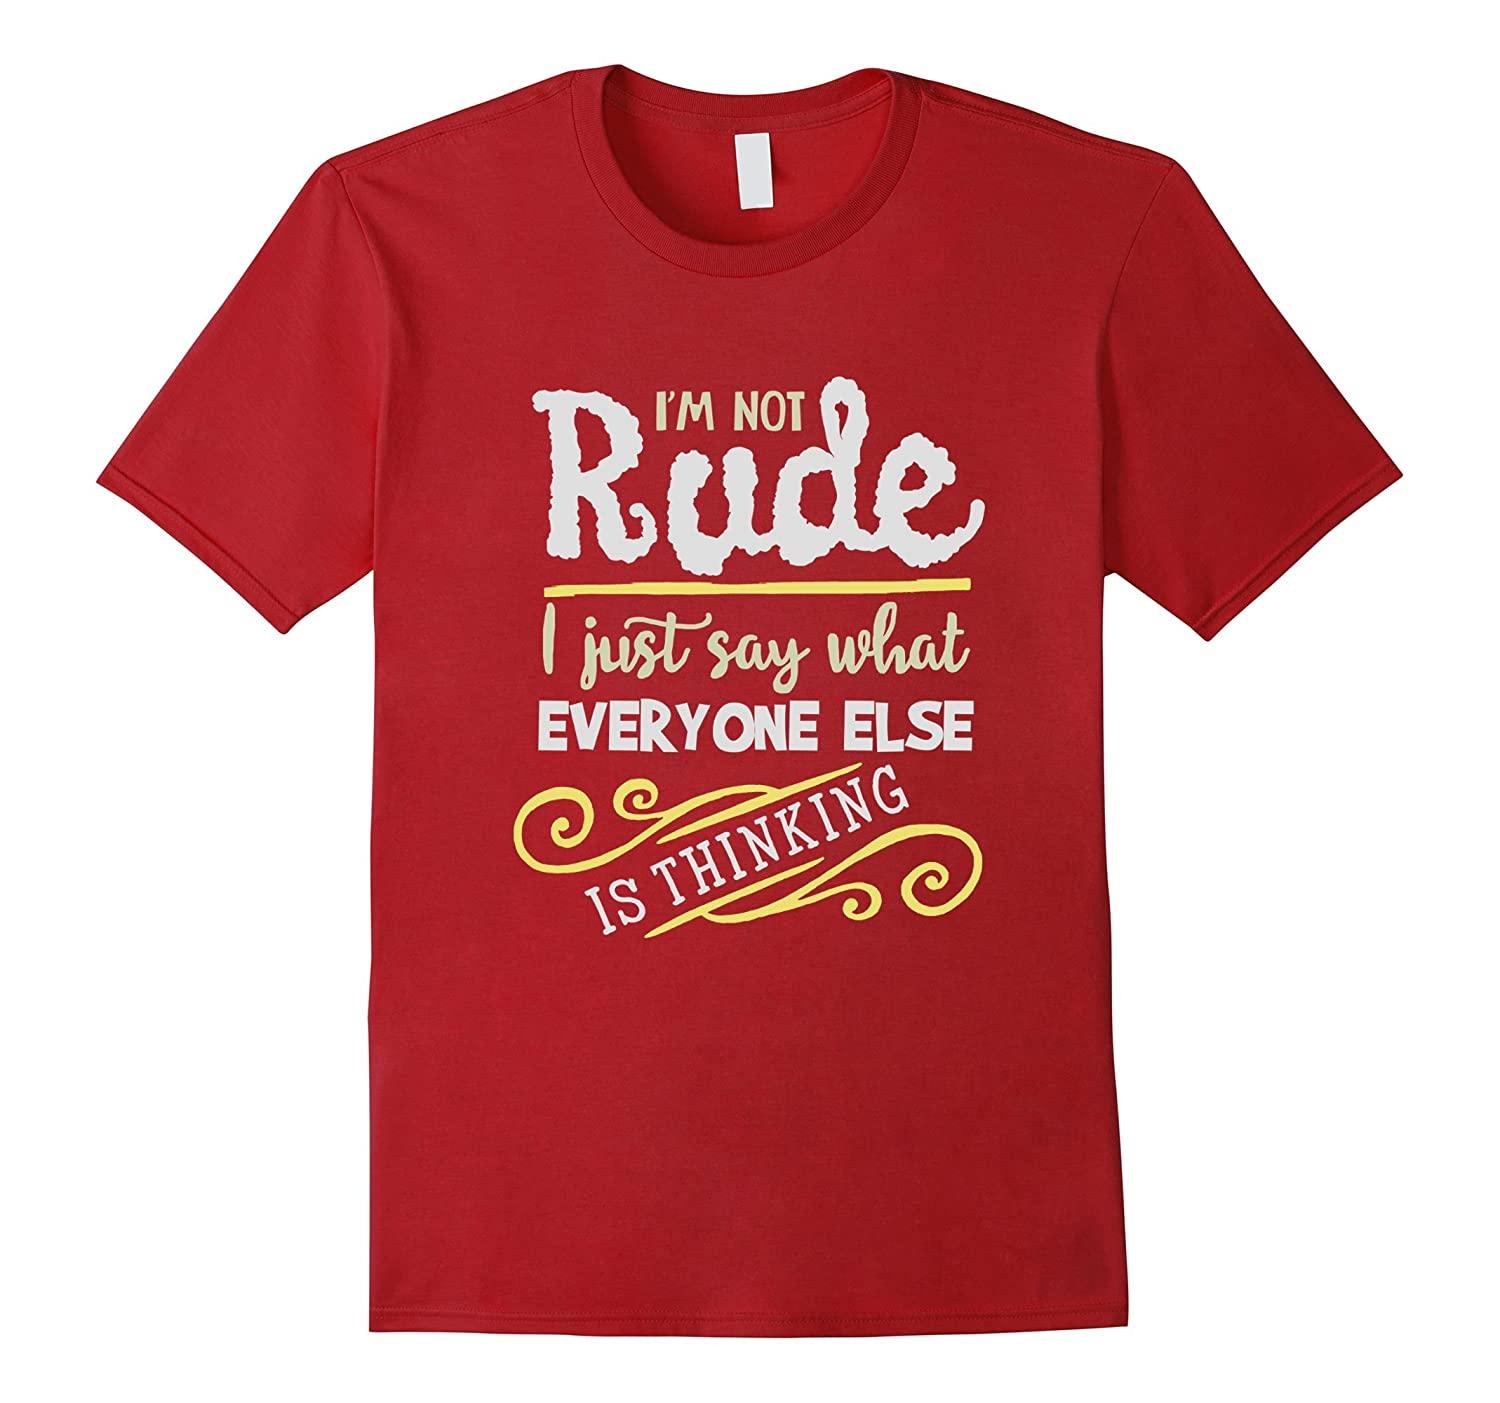 4e8a8cfb I'm Not Rude I Just Say What Everyone Else Is Thinking Shirt-Rose ...